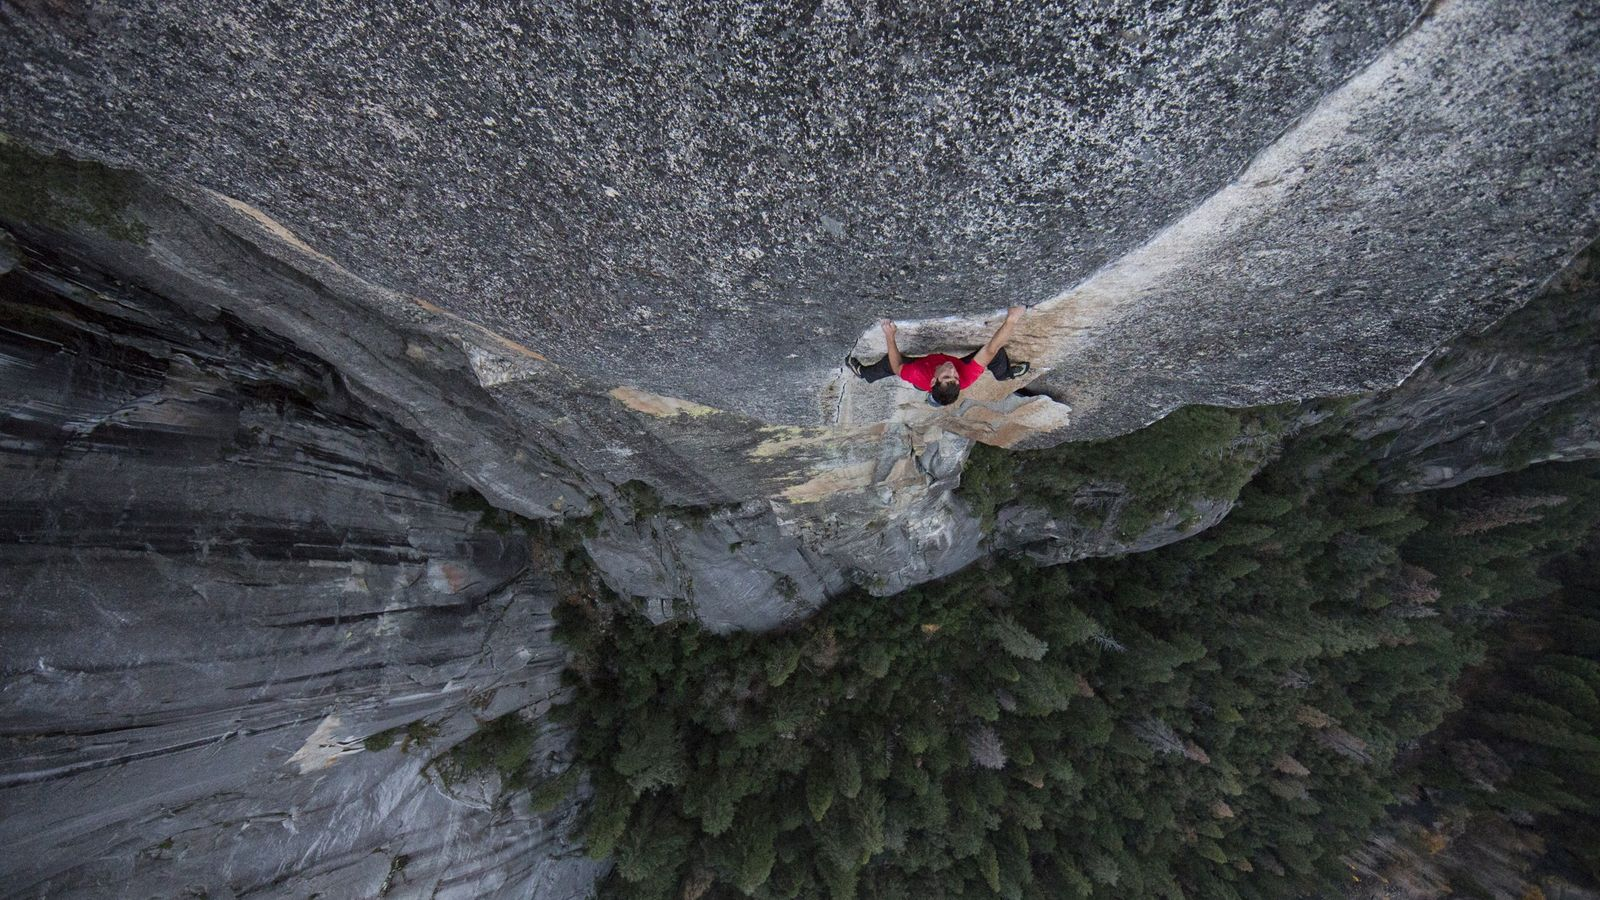 As part of his training, Honnold free soloed a Yosemite route called Excellent Adventure.